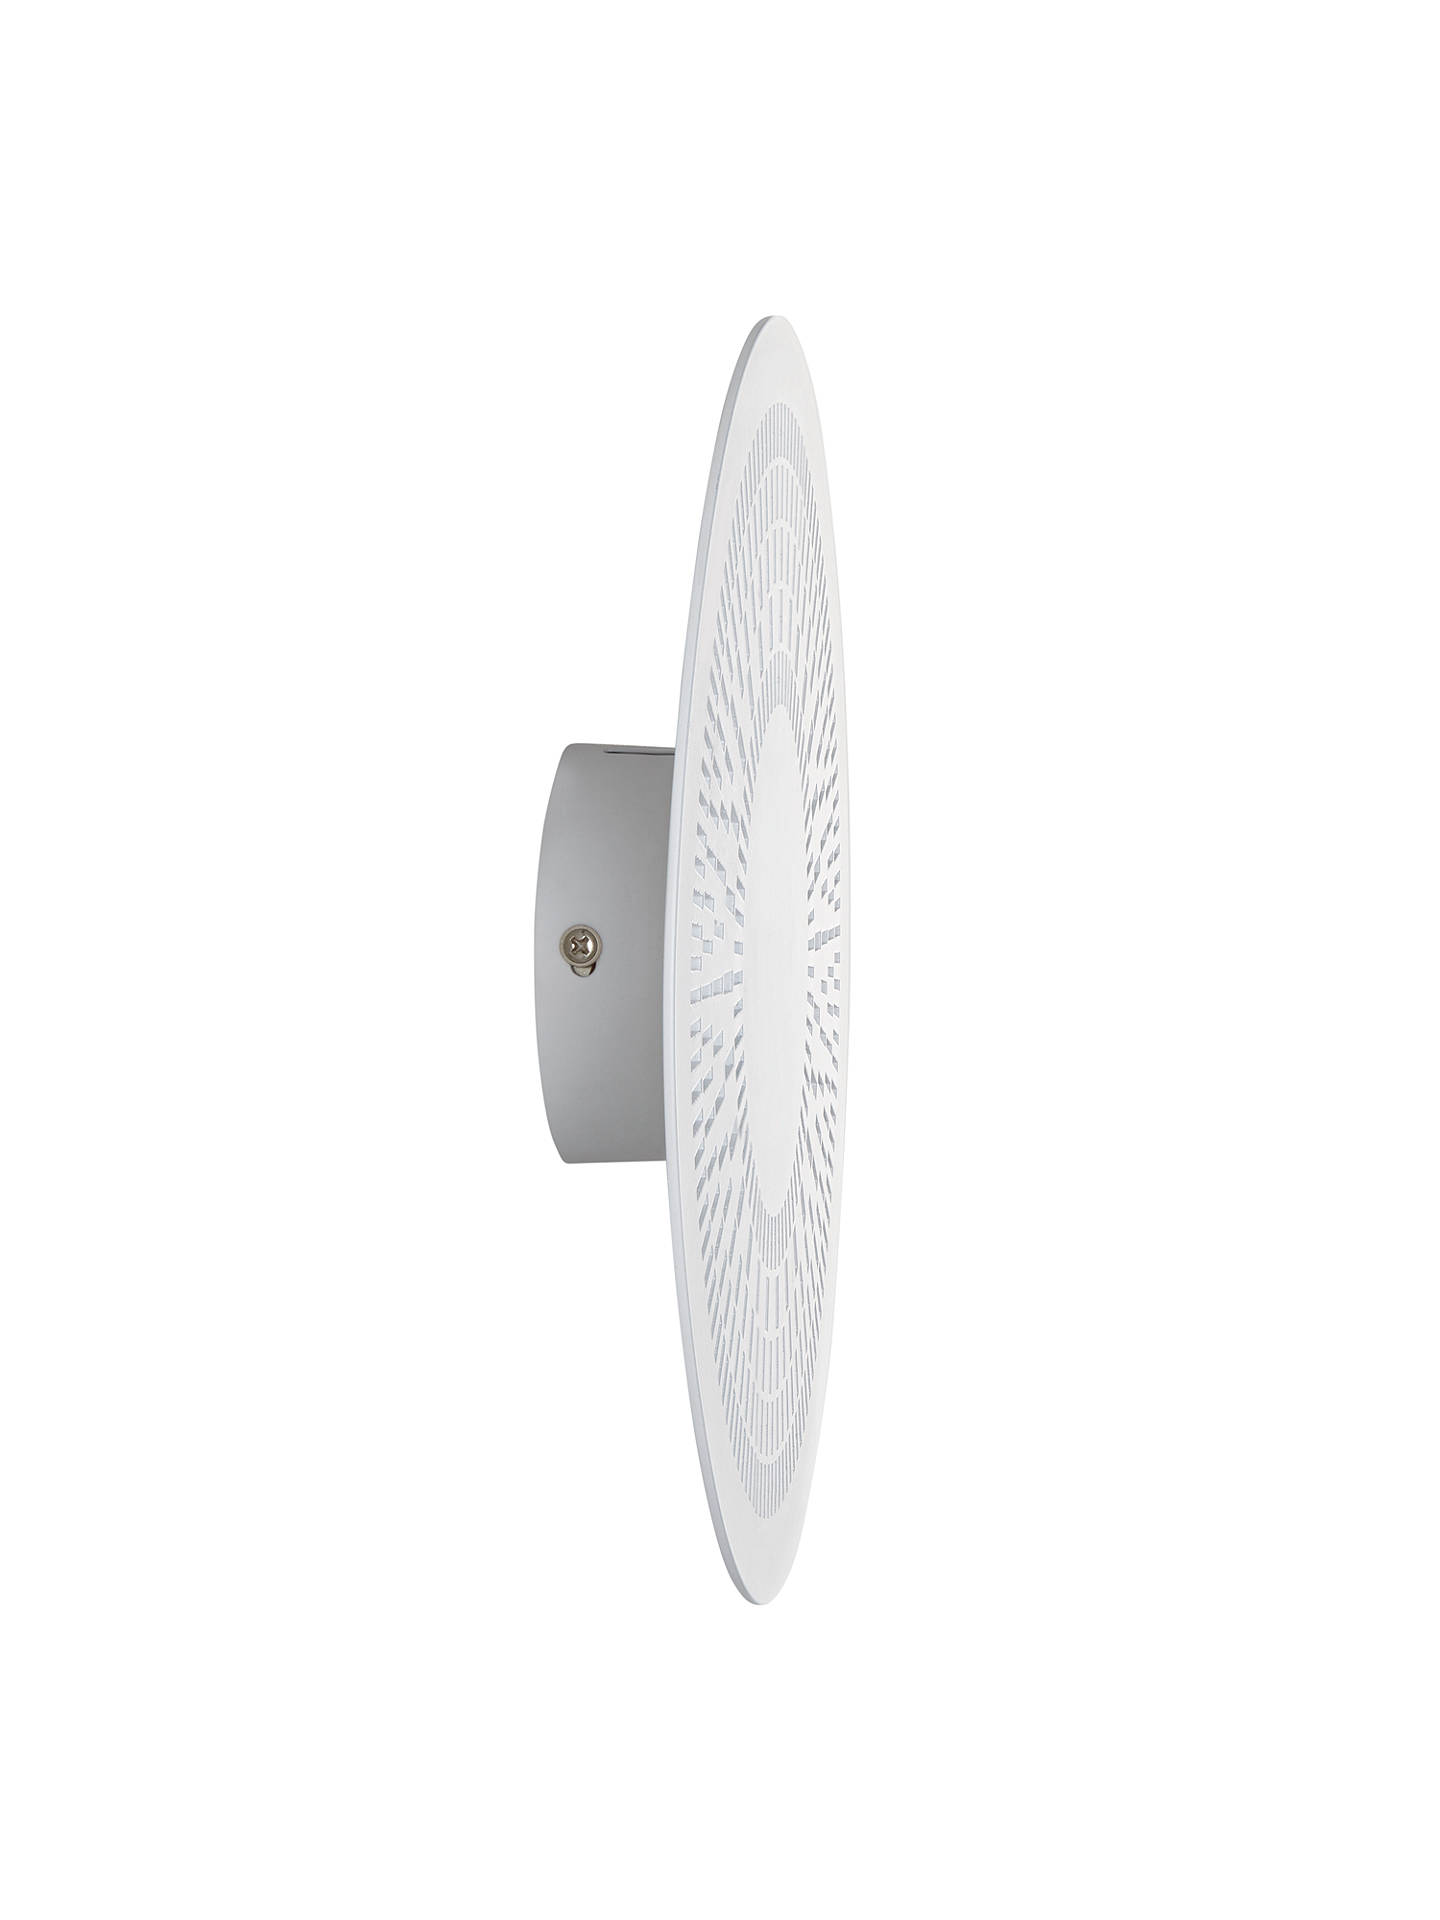 BuyJohn Lewis & Partners Casino LED Wall Light, White Online at johnlewis.com